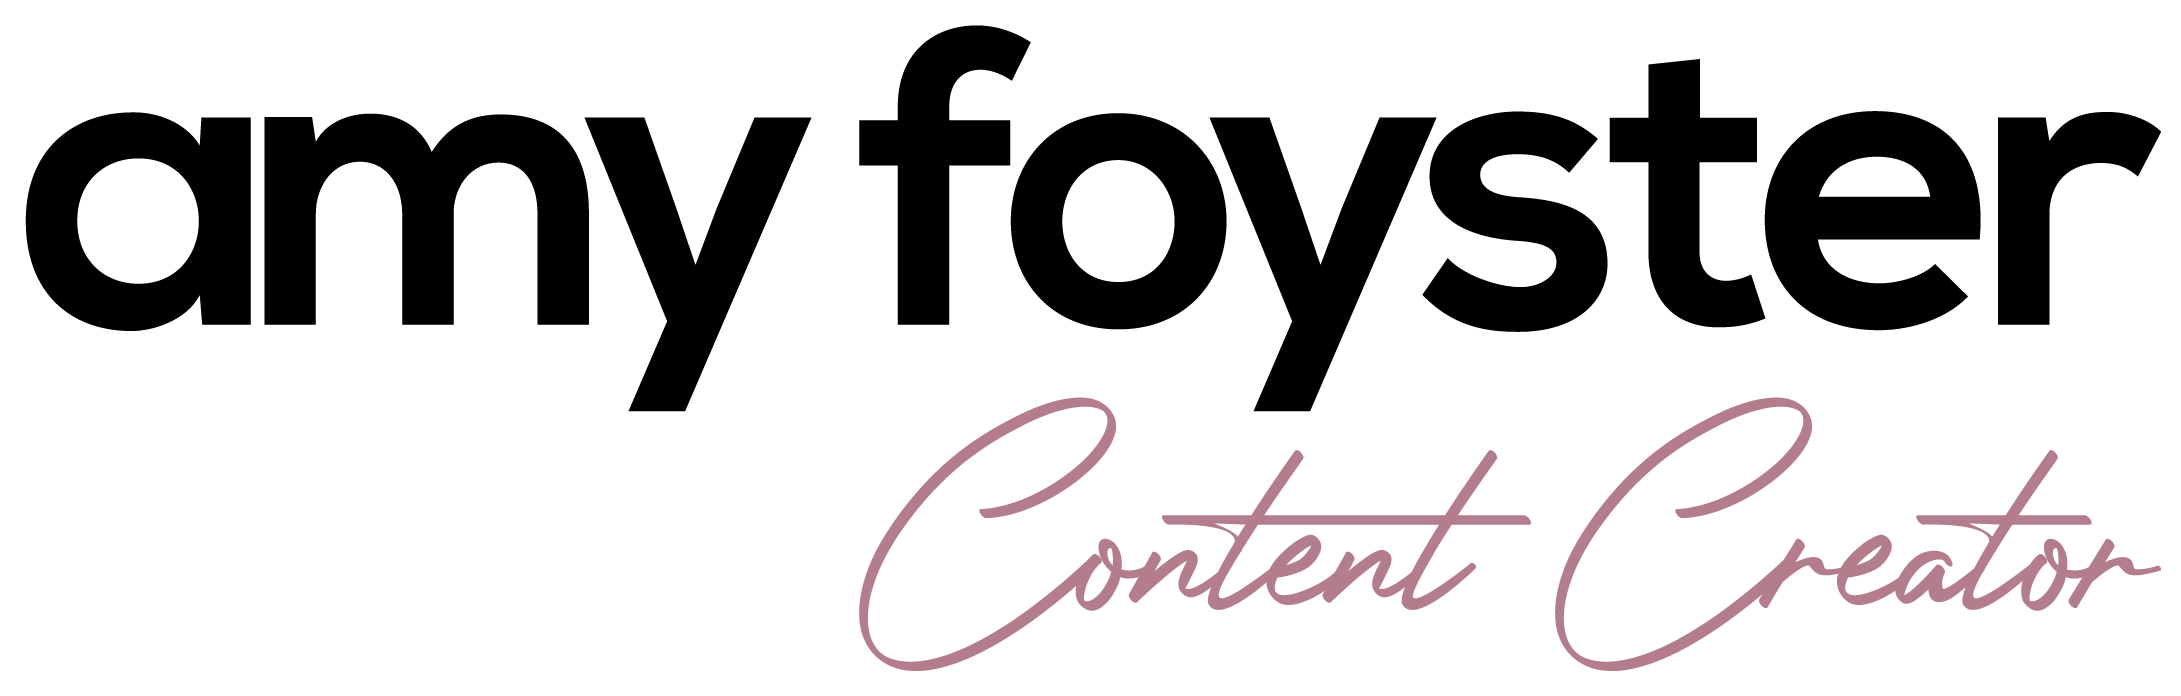 Amy Foyster - Content Creator Logo